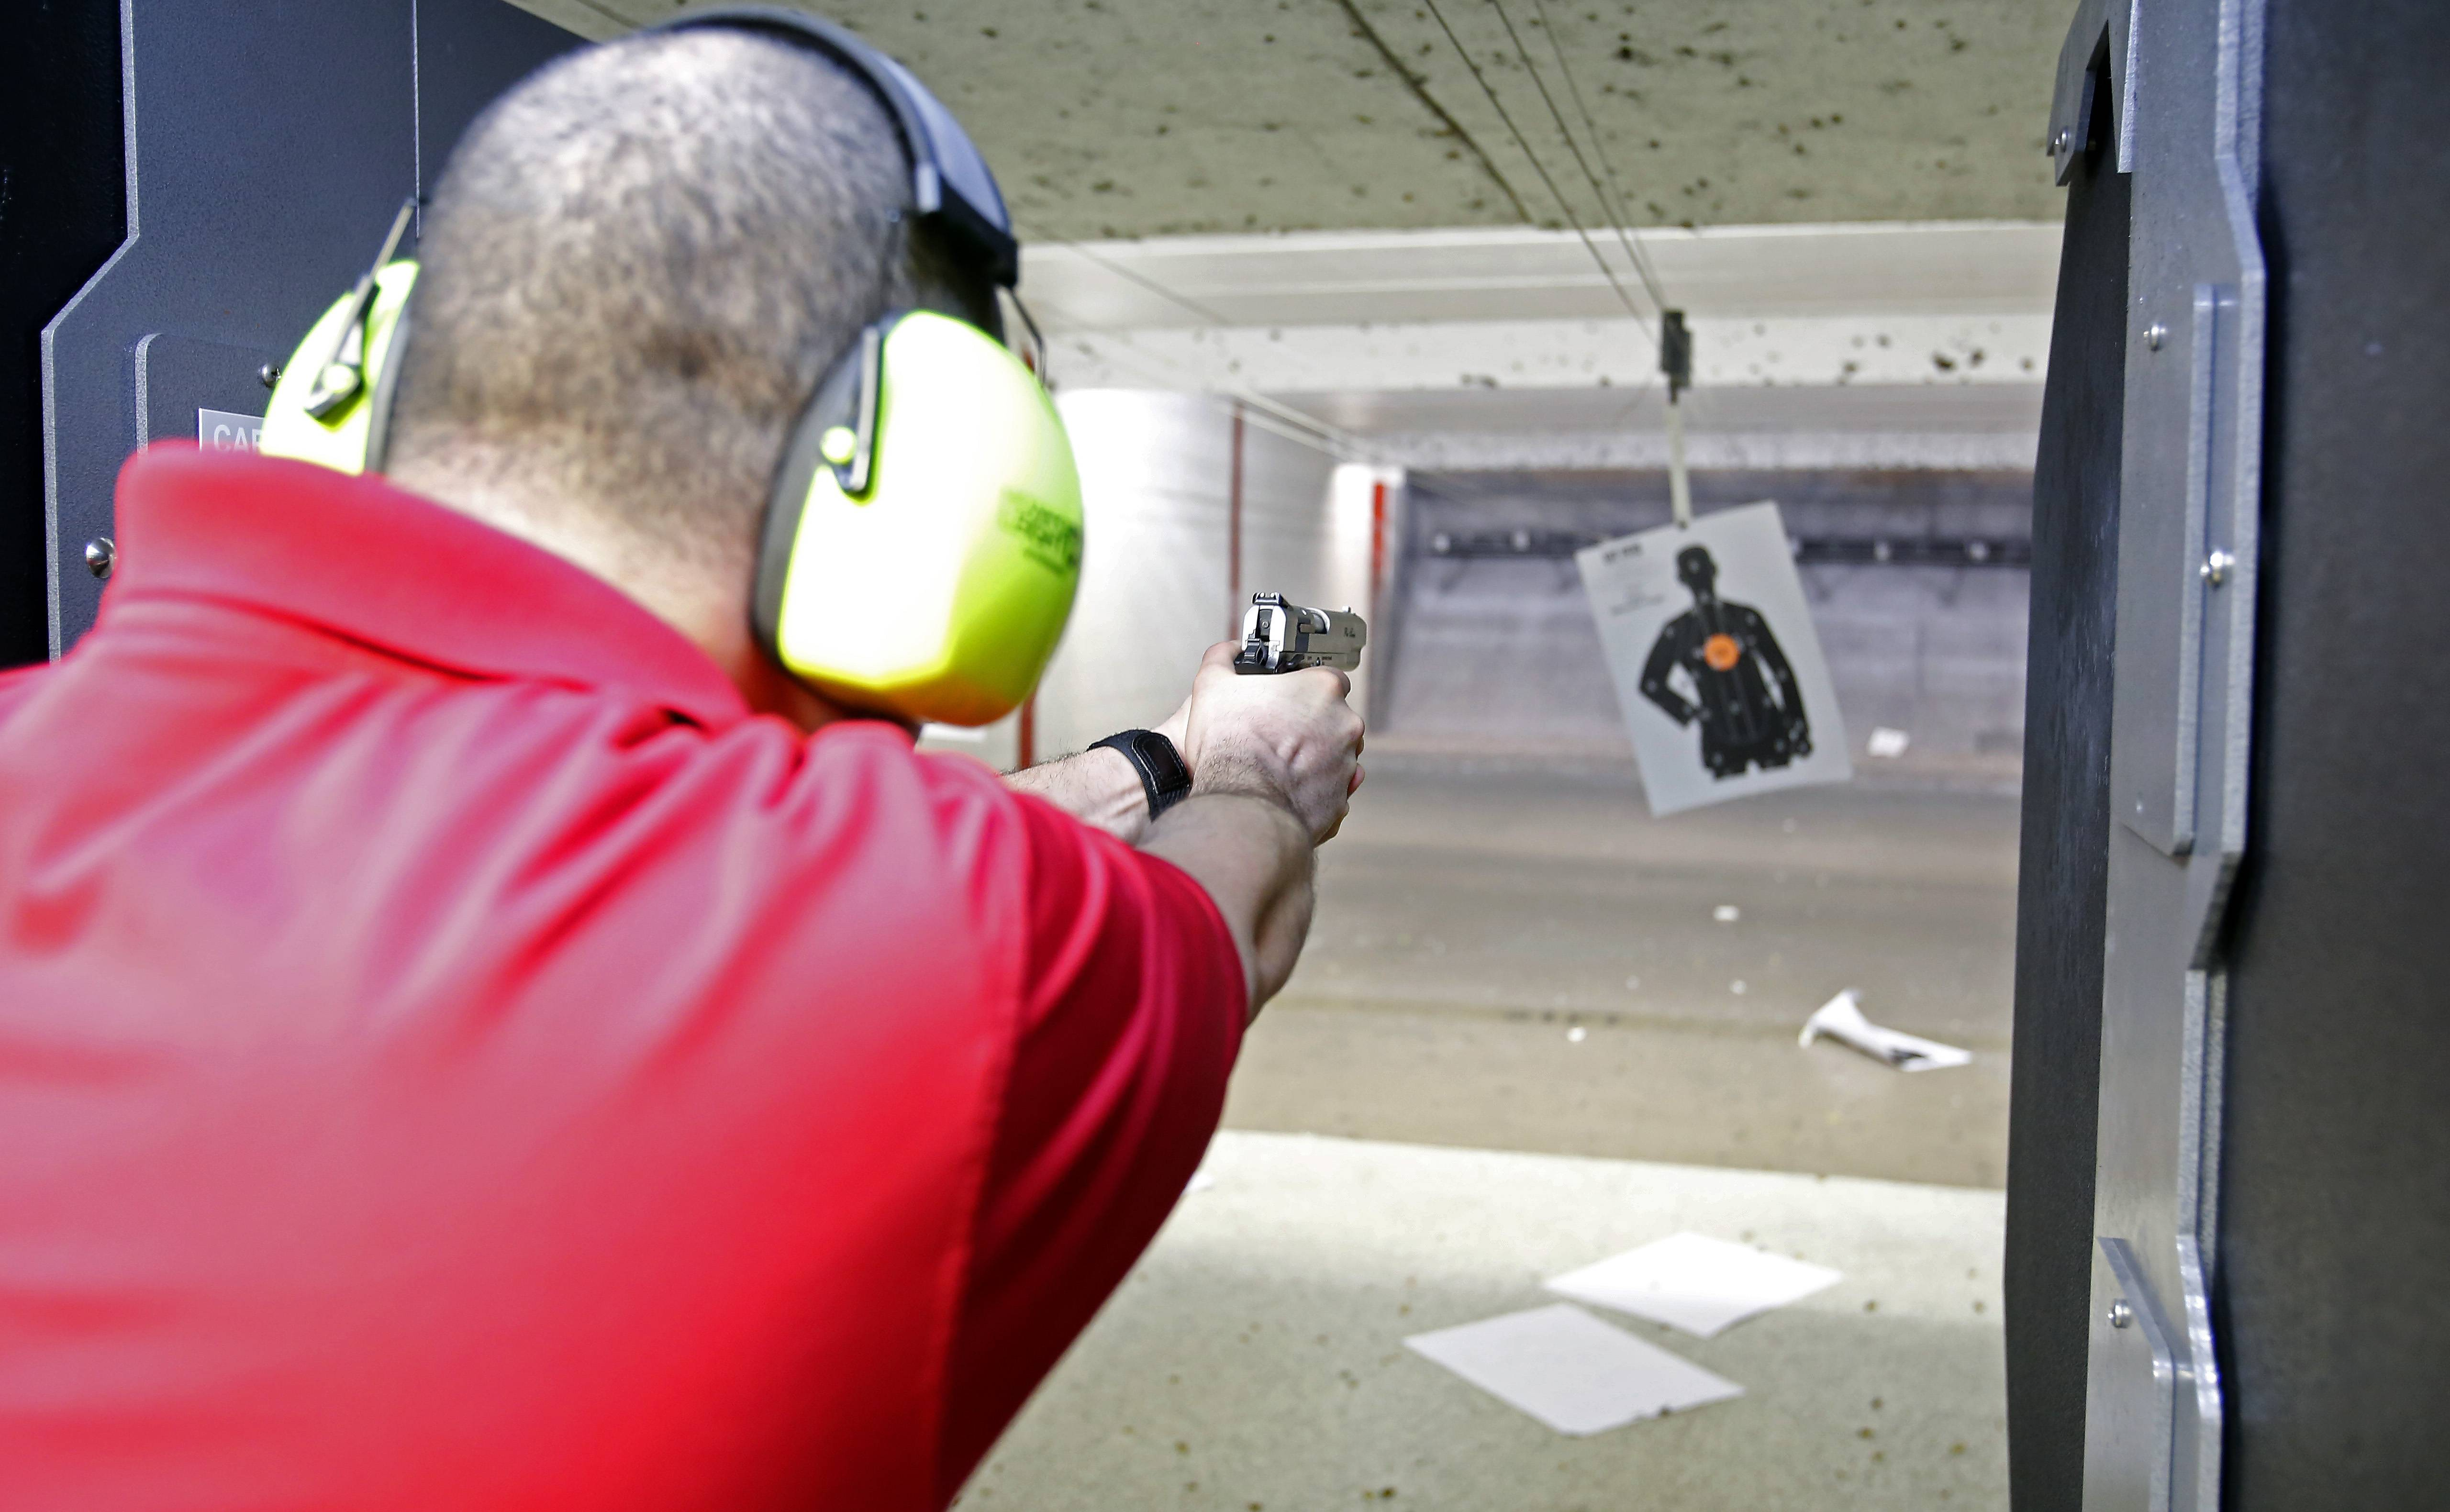 Noel Garcia, an instructor at GAT Guns in East Dundee. practices at the company's range in East Dundee. Local ranges have seen a significant increase in use as people seek training required for concealed carry permits.